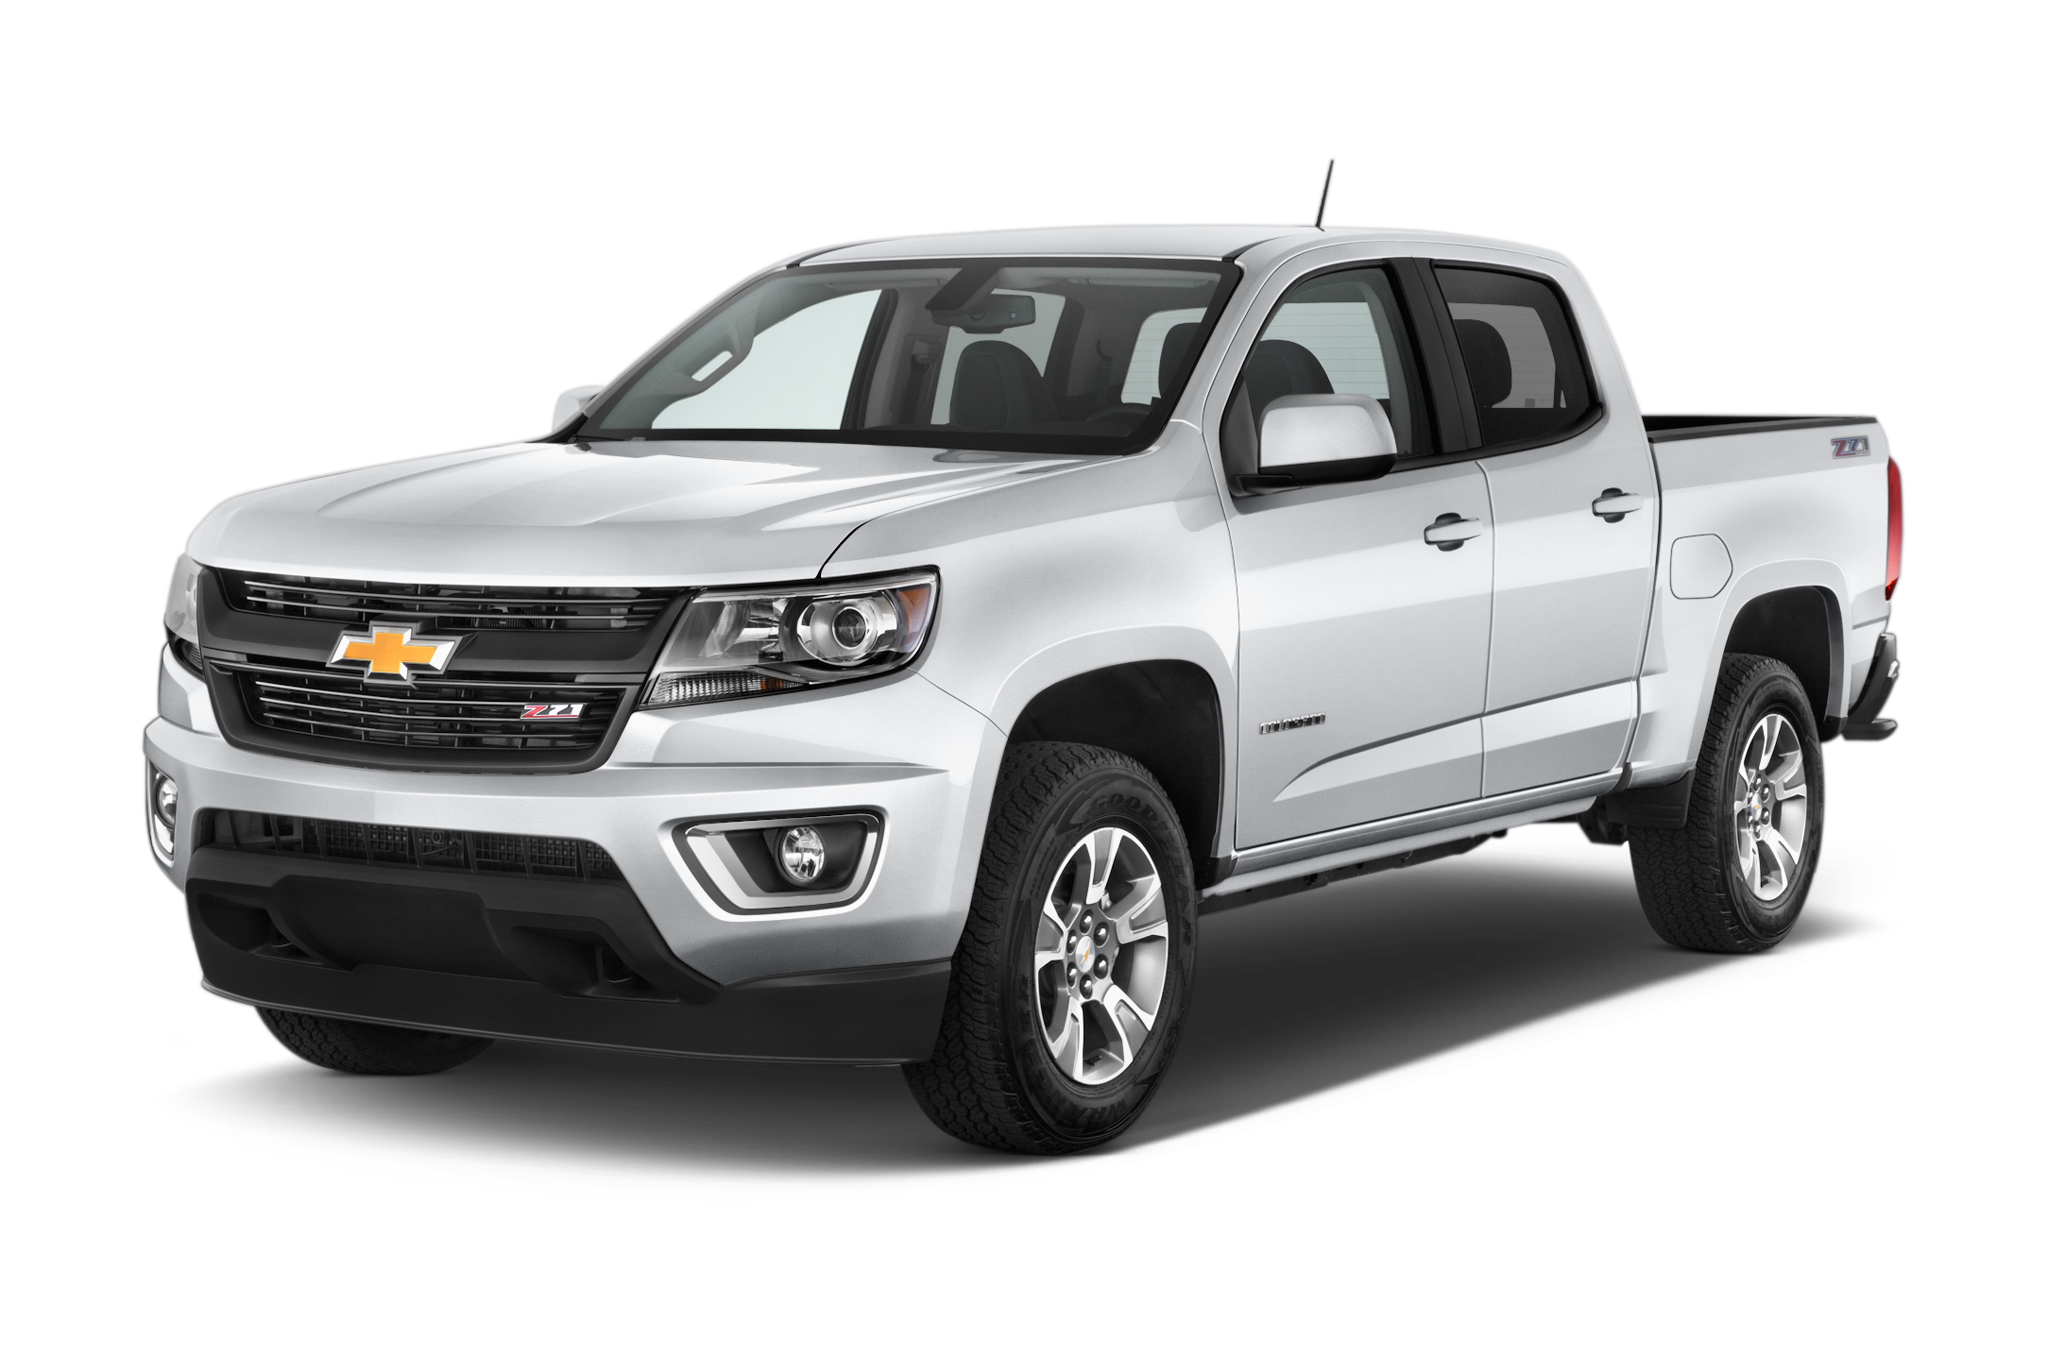 2016 chevrolet colorado 4wd z71 crew cab short box specs and features msn autos. Black Bedroom Furniture Sets. Home Design Ideas